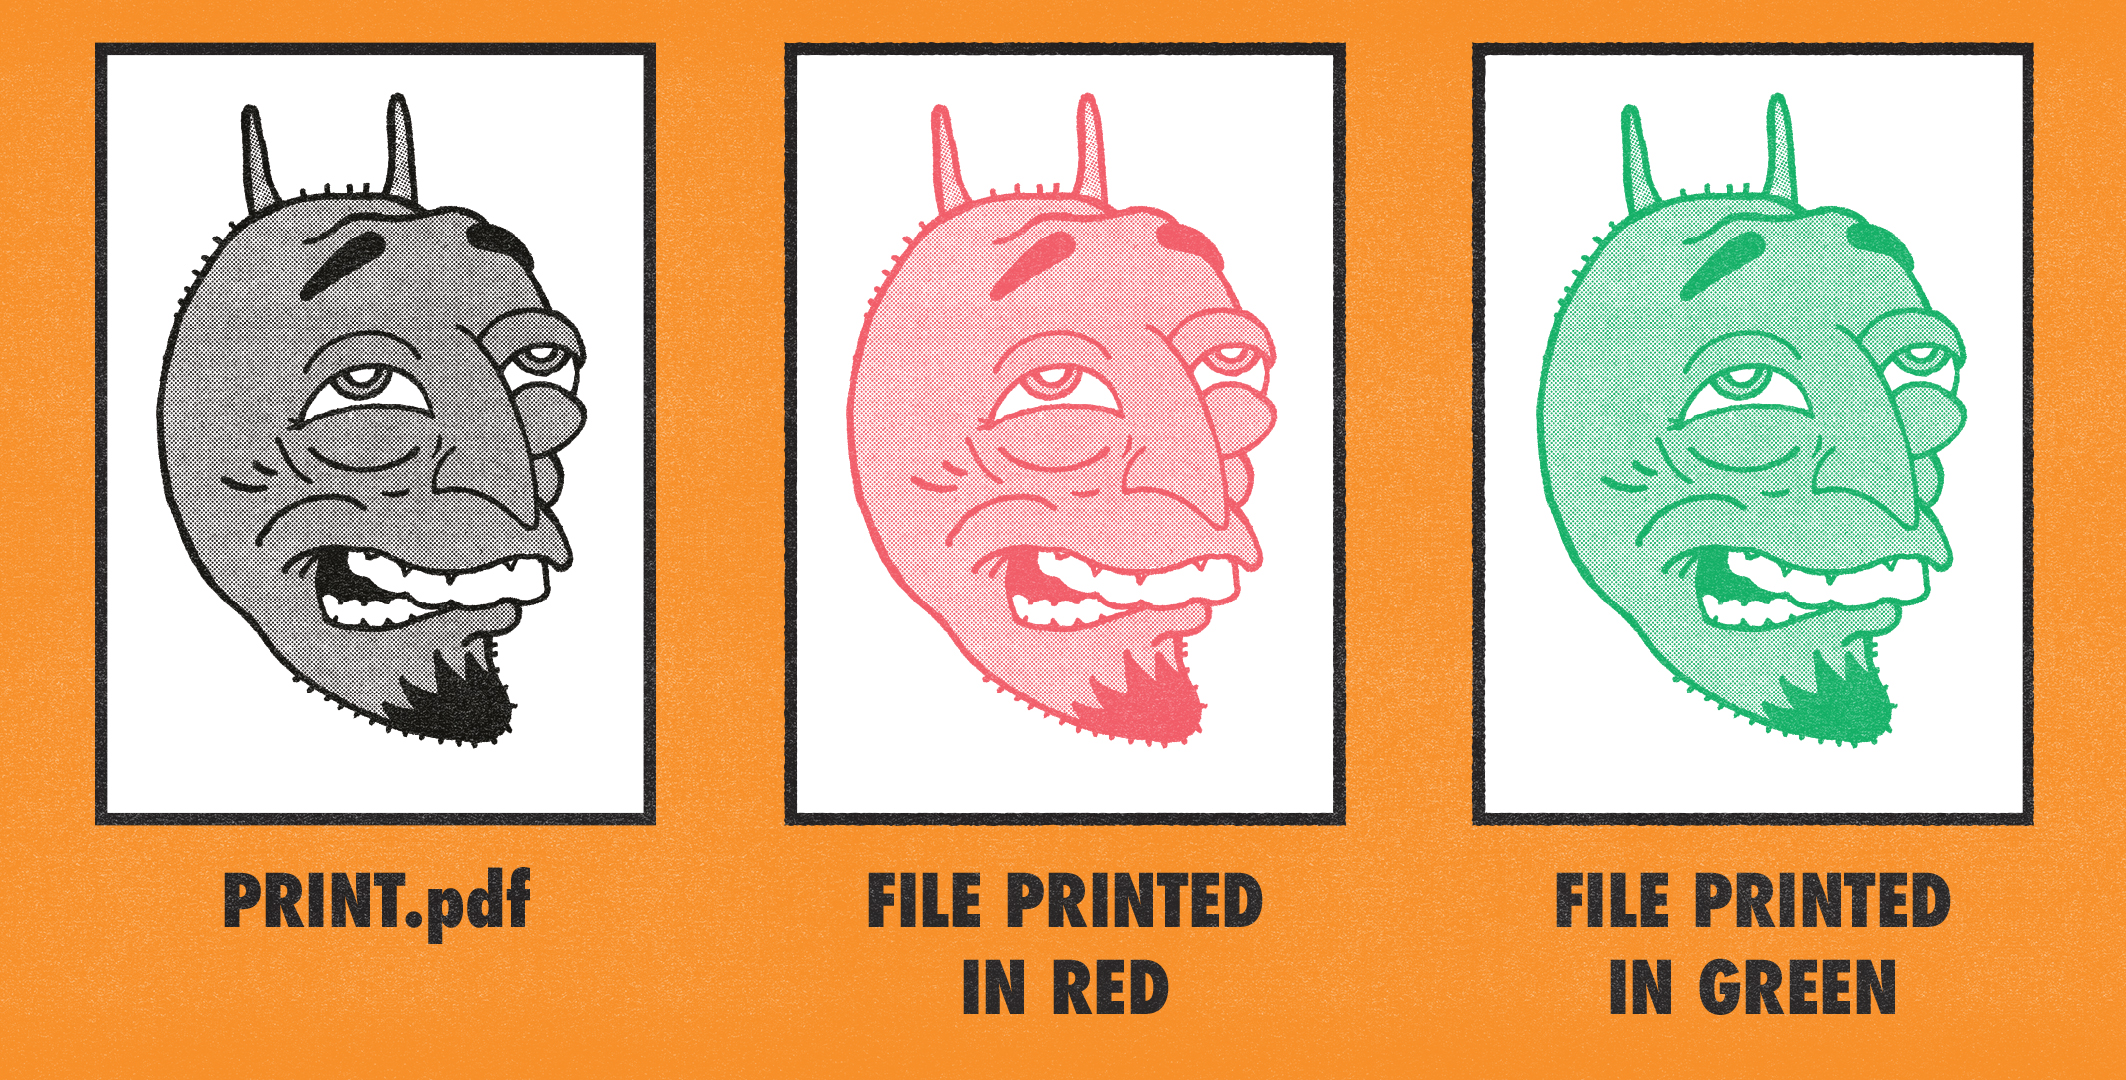 Above:  Greyscale PDF (left), Result when the PDF is printed in red (middle), Result when the PDF is printed in Green (right).